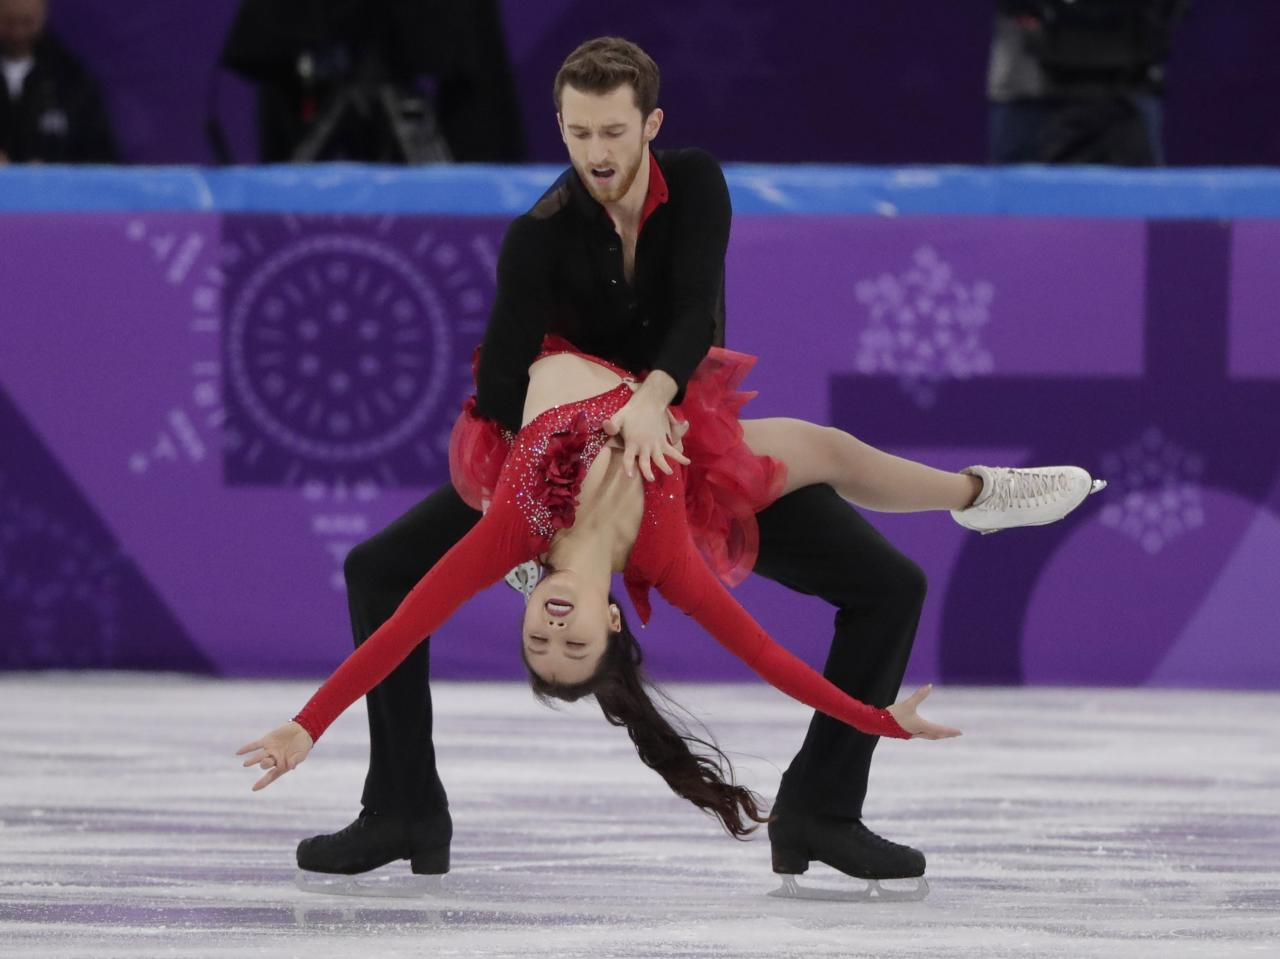 South Korean Ice dancers almost suffer Wardrobe malfunction at the 2018 Olympics